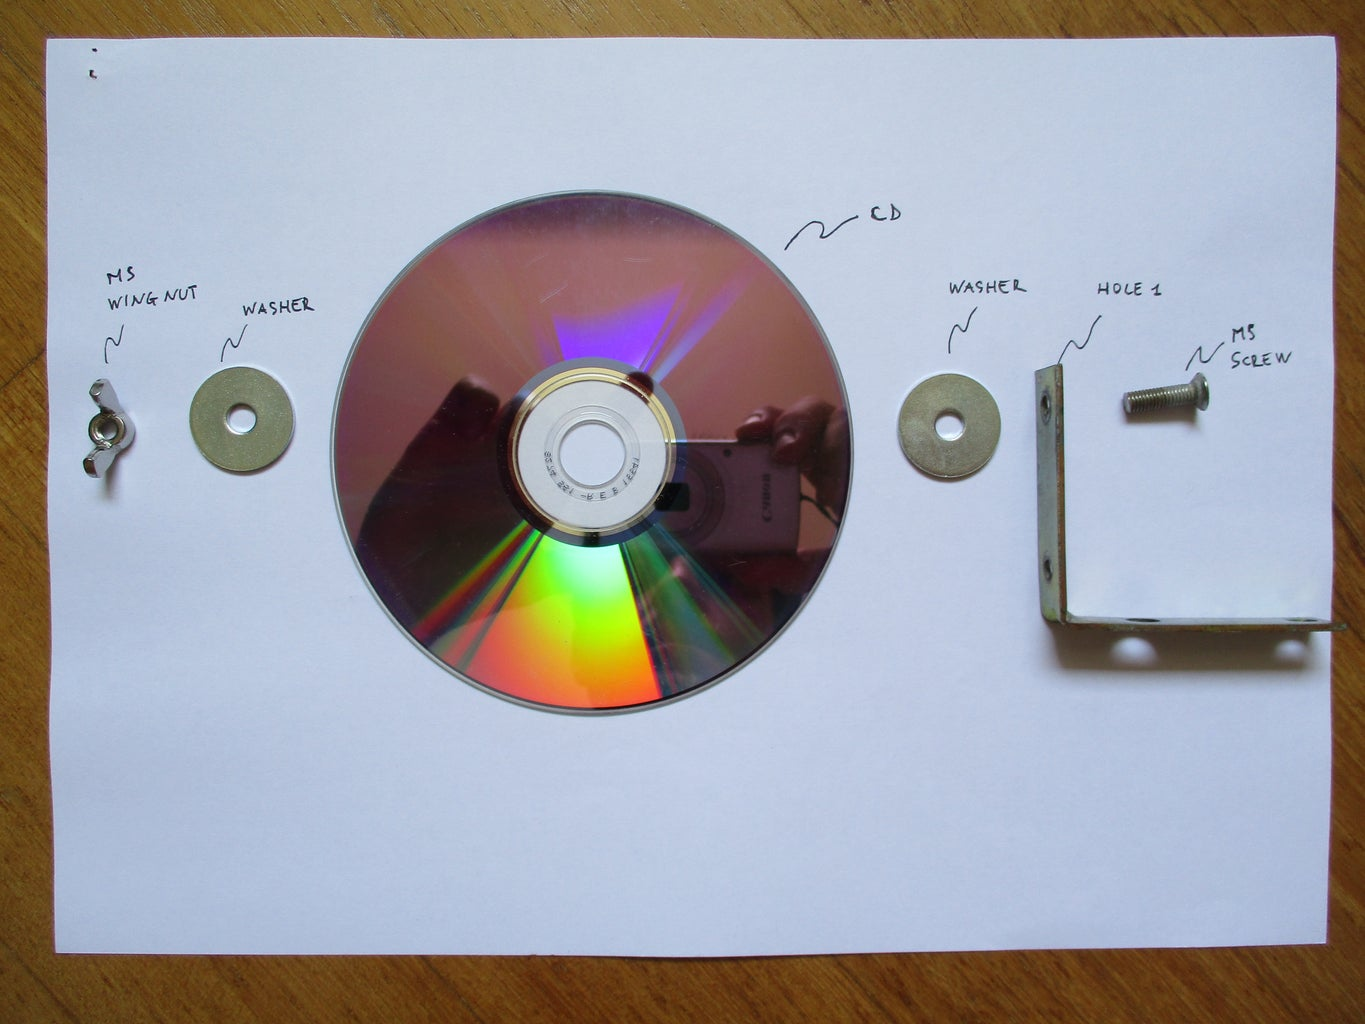 Connect CD to the Bracket